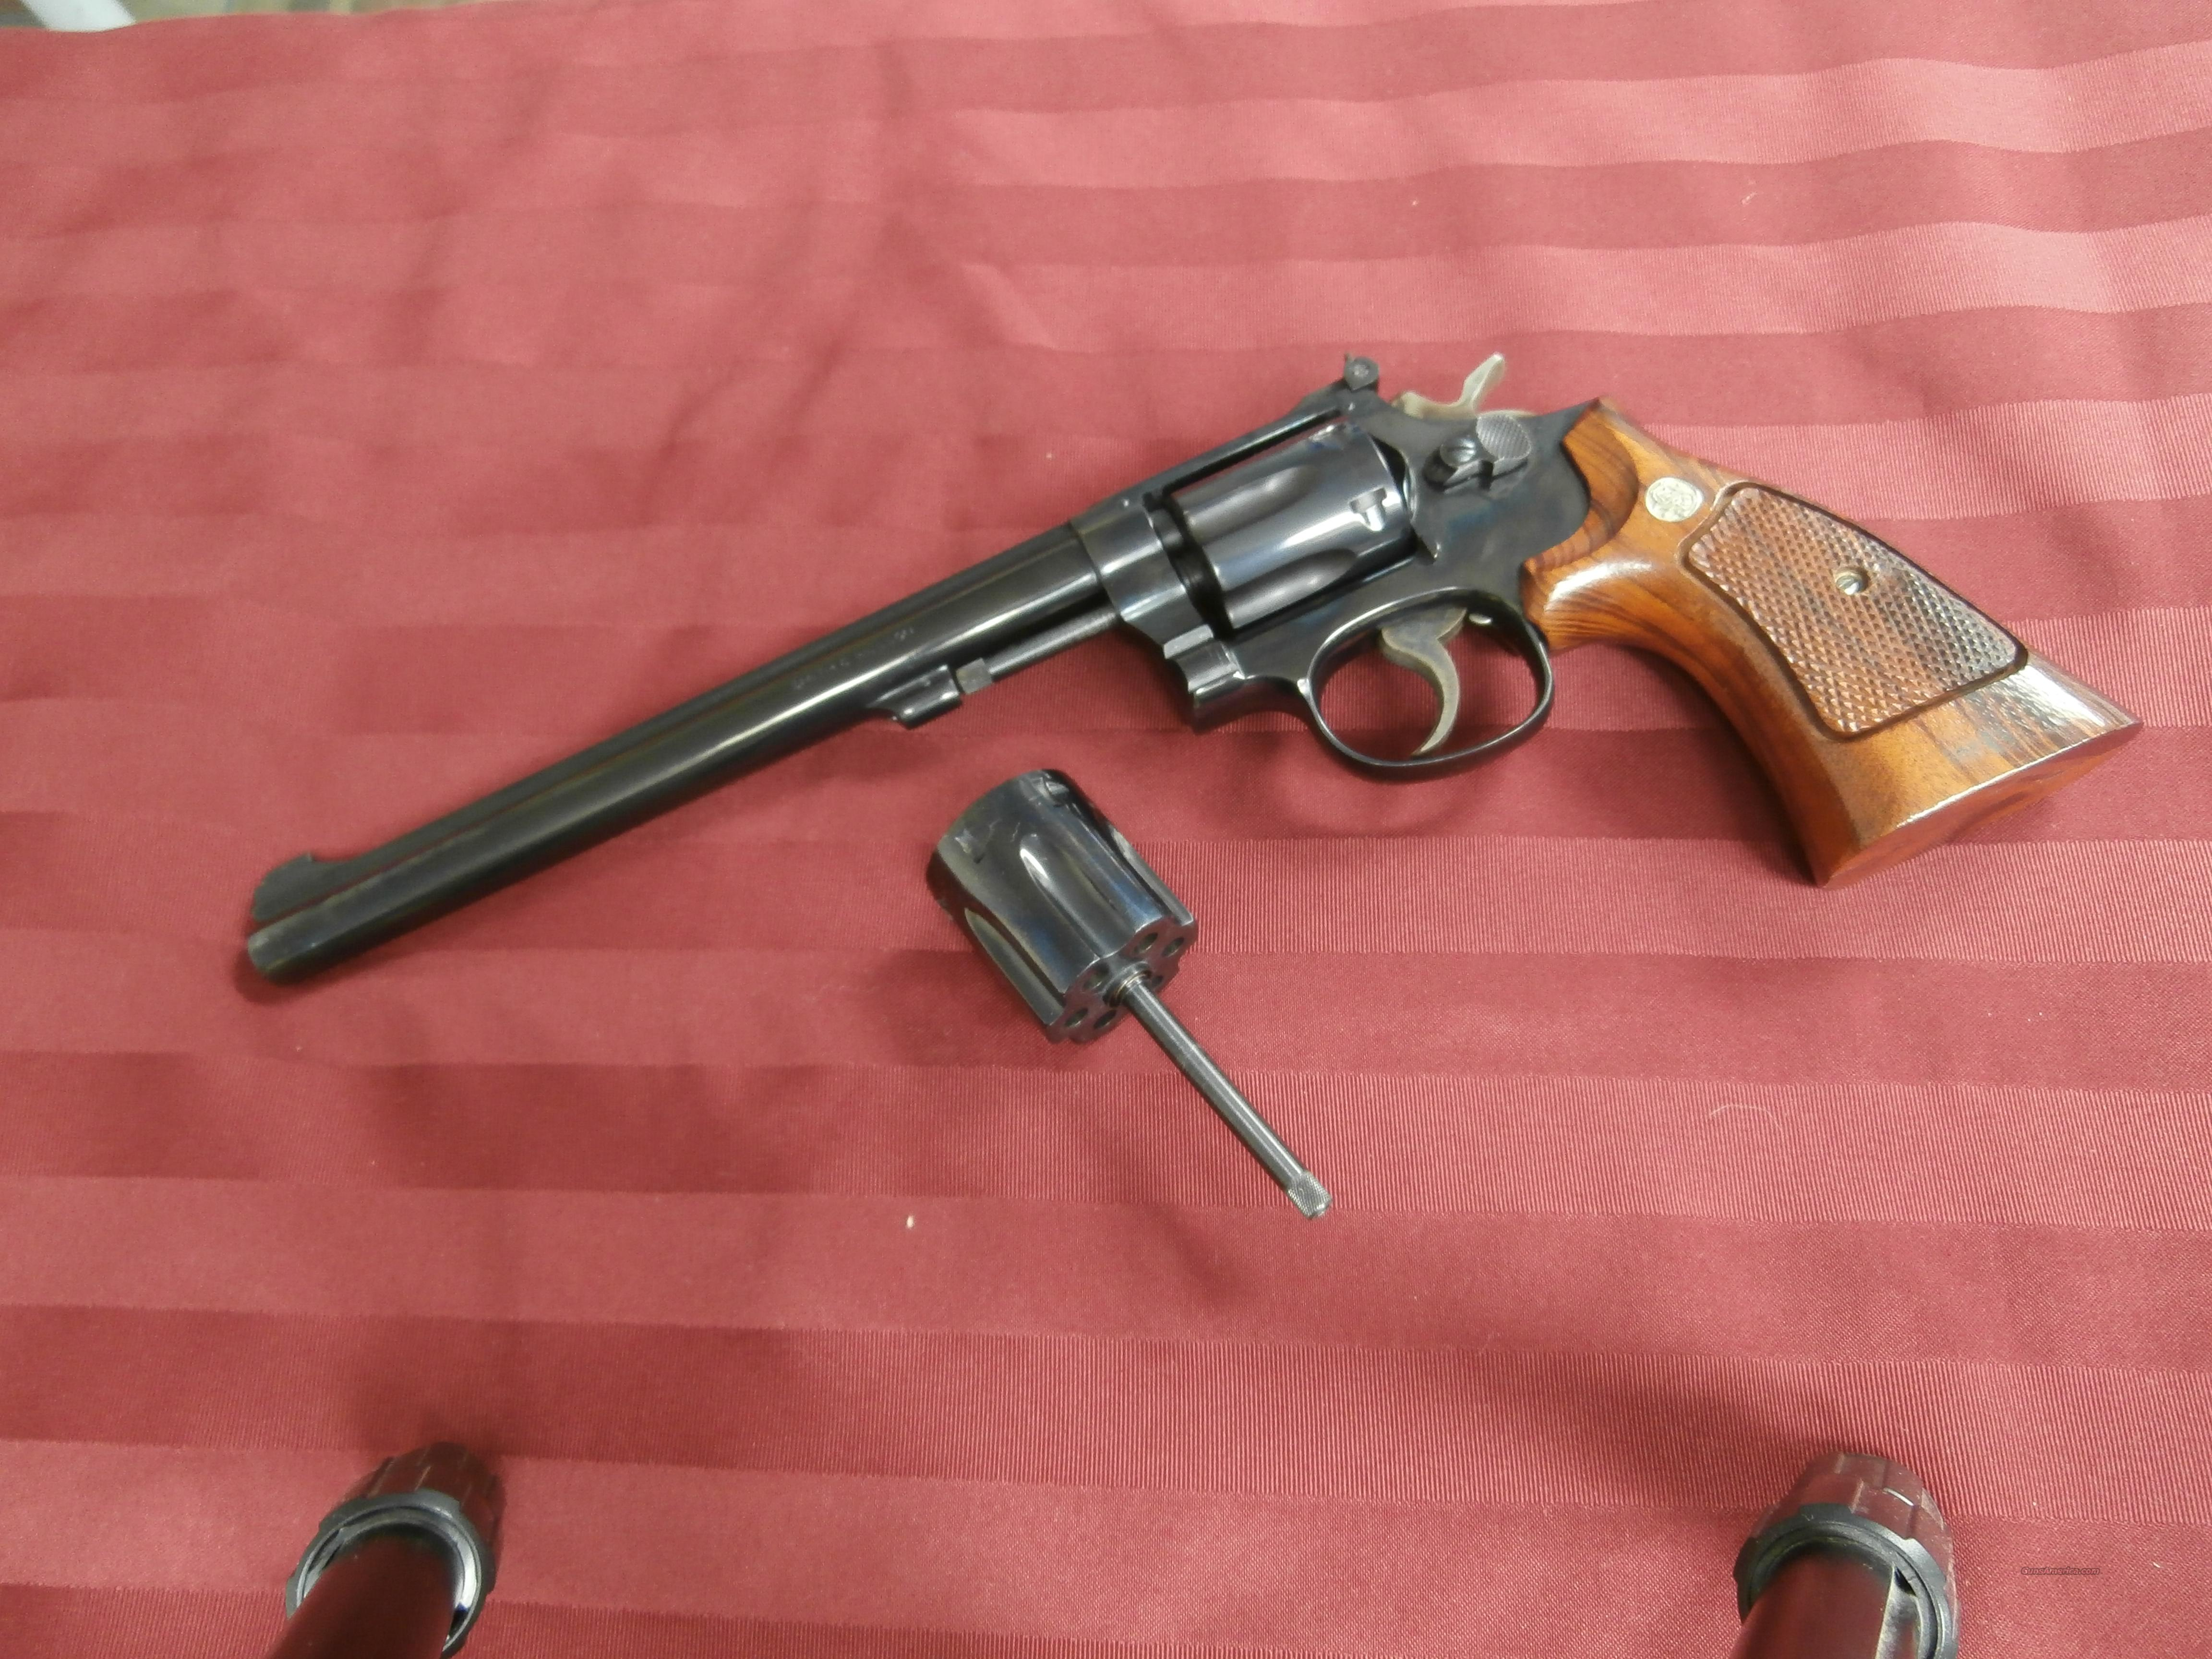 Smith & wesson 48-3 w/22lr cyl  Guns > Pistols > Smith & Wesson Revolvers > Full Frame Revolver